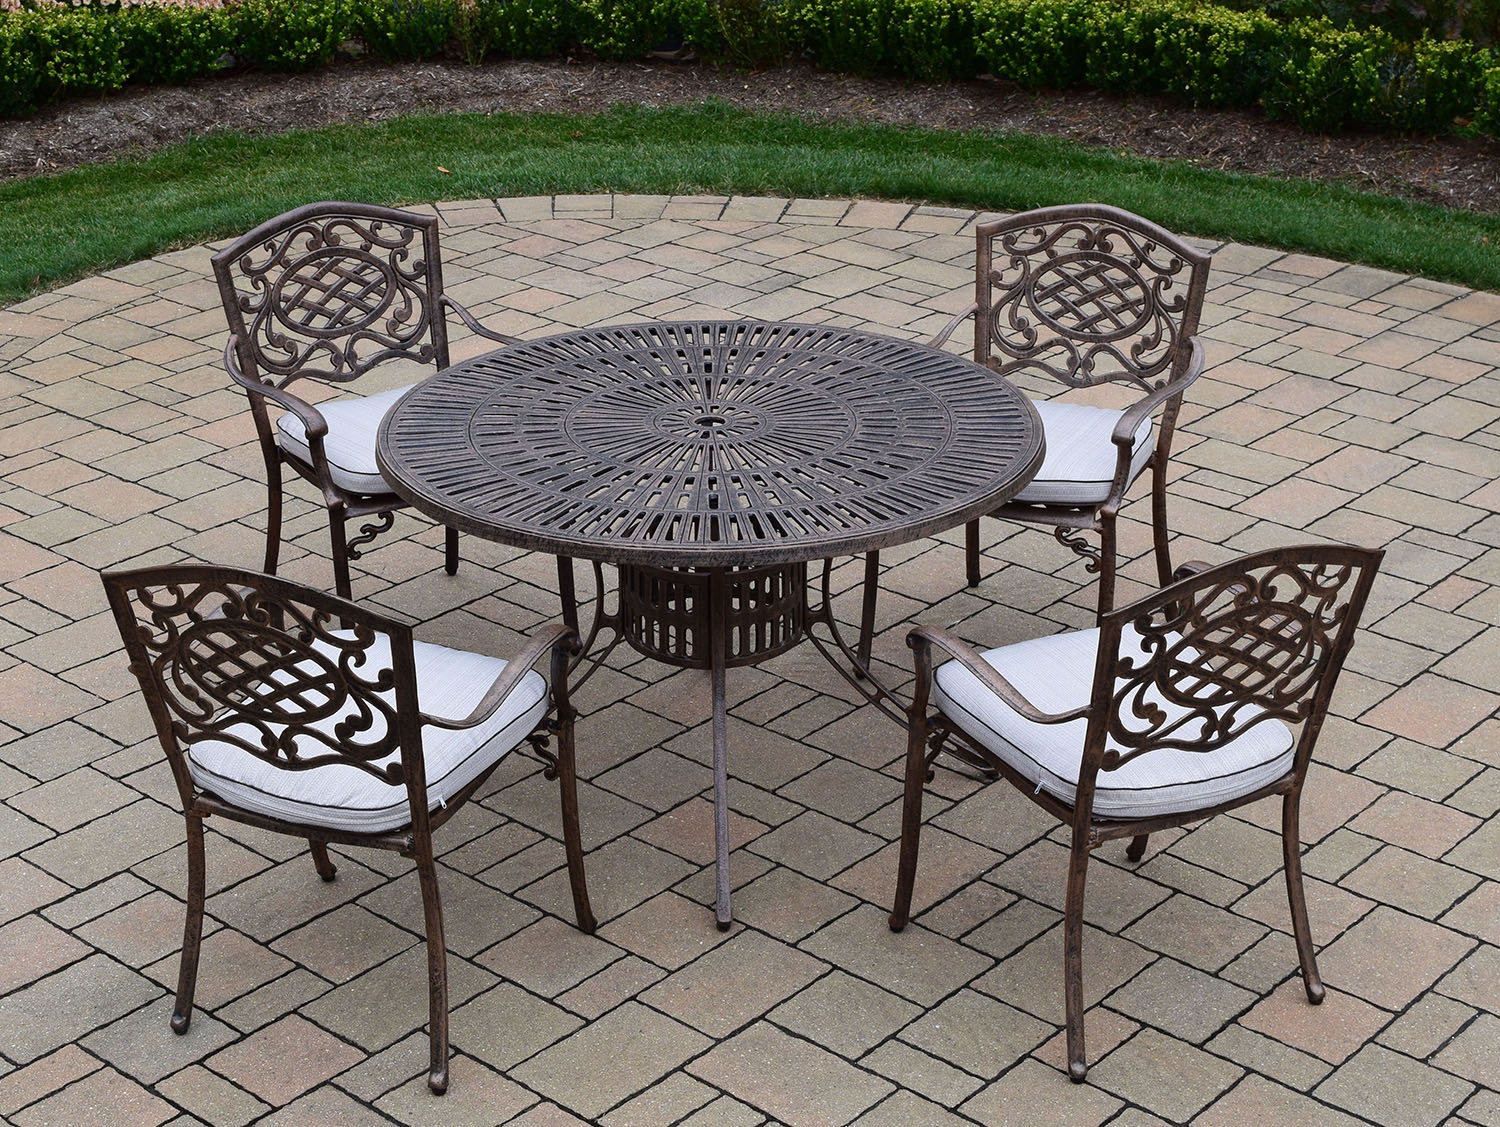 Select Sunray Antique Bronze Cushion Dining Set 57 324